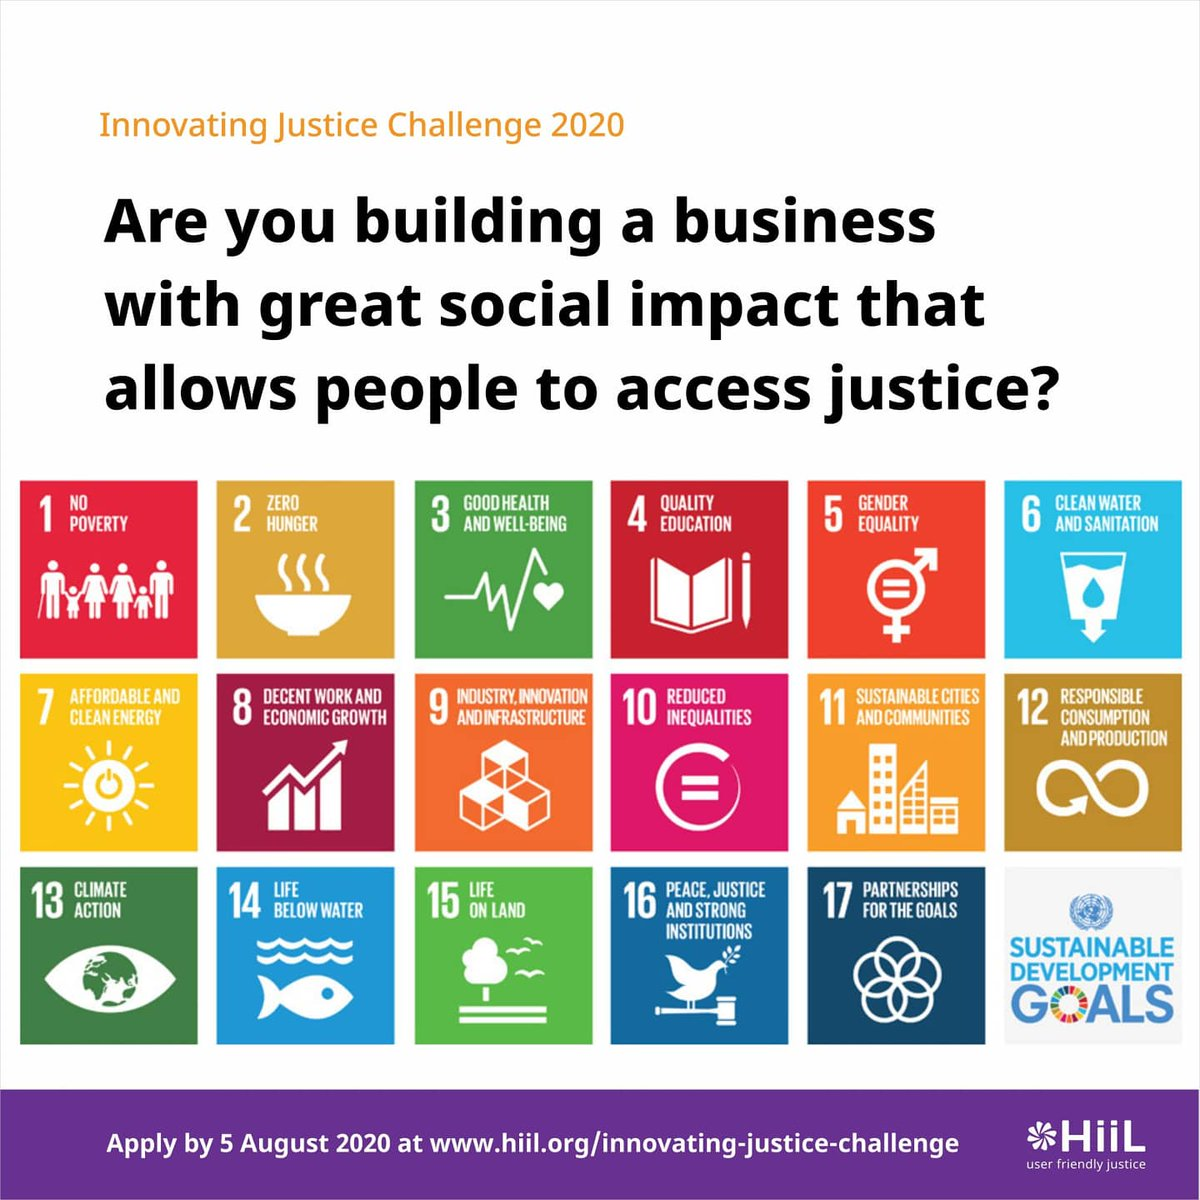 There's less than 3 weeks left to apply for the HiiL Innovating Justice Challenge and get EUR 10 000 non-equity funding for your social startup.   Apply now!  https://t.co/Y9er7Mk5Be  #justinnovate20 #InnovatingJusticeChallenge2020 https://t.co/kZV6kfWxI7